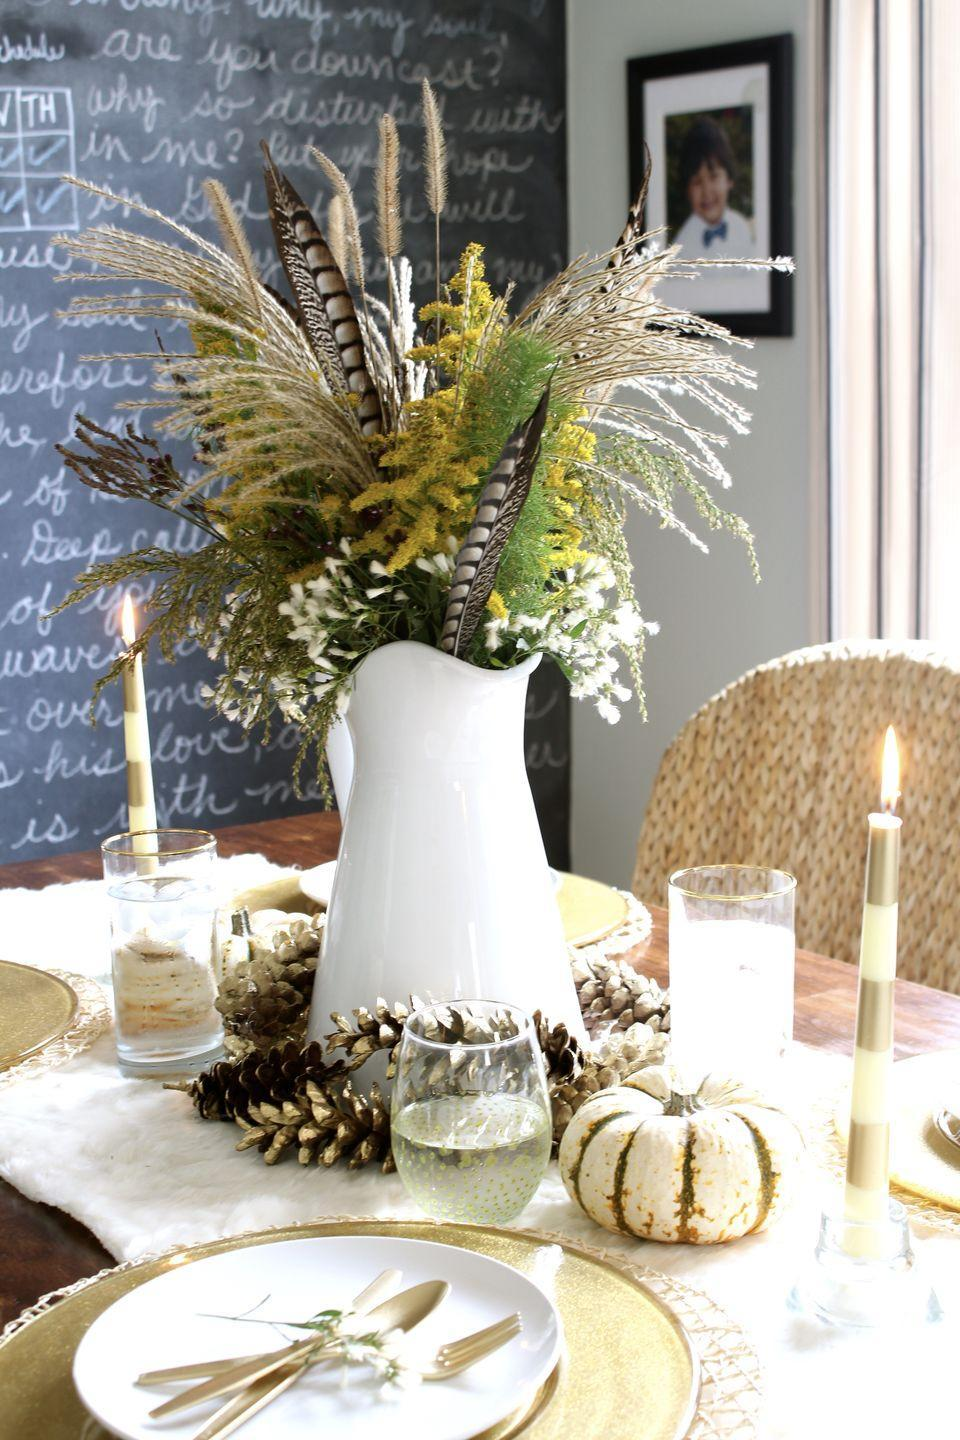 """<p>This dramatic fall table from <a href=""""http://simplestylings.com/blogger-stylin-home-tour-thanksgiving-edition-create-wildflower-centerpiece-sweet-potato-casserole-family-recipe/"""" rel=""""nofollow noopener"""" target=""""_blank"""" data-ylk=""""slk:Simple Stylings"""" class=""""link rapid-noclick-resp"""">Simple Stylings</a> includes an unexpected combination of pheasant feathers, pine cones, and white pumpkins. The hand-picked floral arrangement is surrounded by gold pine cones and styled on top of a <a href=""""https://www.elledecor.com/design-decorate/interior-designers/a9040/faux-fur/"""" rel=""""nofollow noopener"""" target=""""_blank"""" data-ylk=""""slk:faux-fur table runner"""" class=""""link rapid-noclick-resp"""">faux-fur table runner</a>.</p>"""